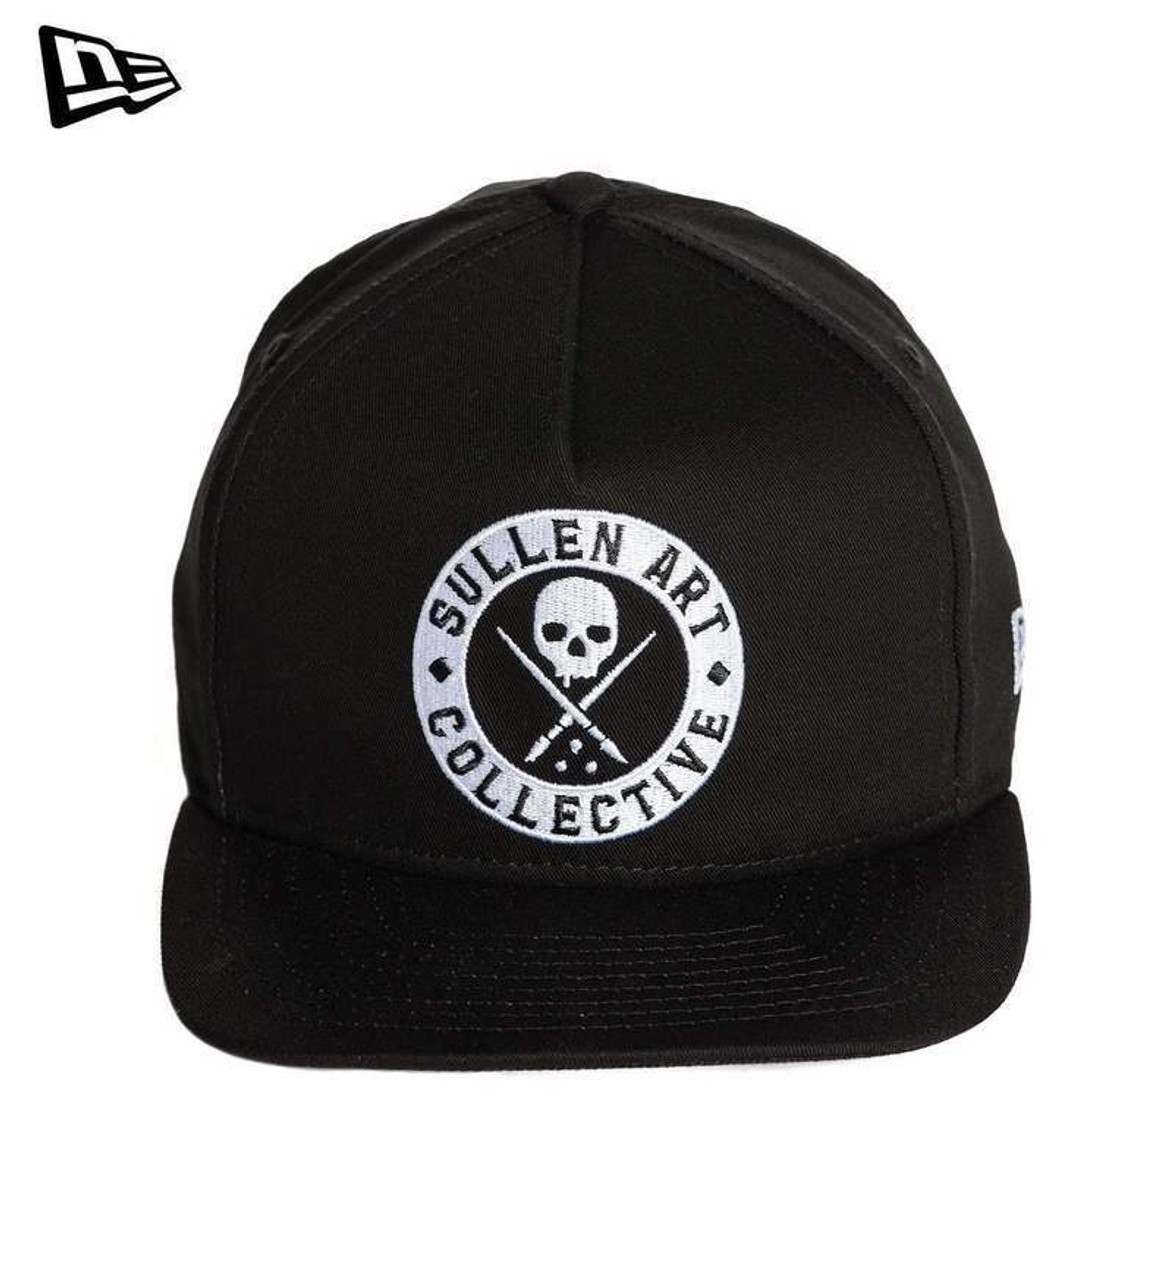 1f5014b459c24 Sullen Clothing New Era Staple Badge Logo Tattoos Art Snapback Cap Hat  SCA1809 - Fearless Apparel